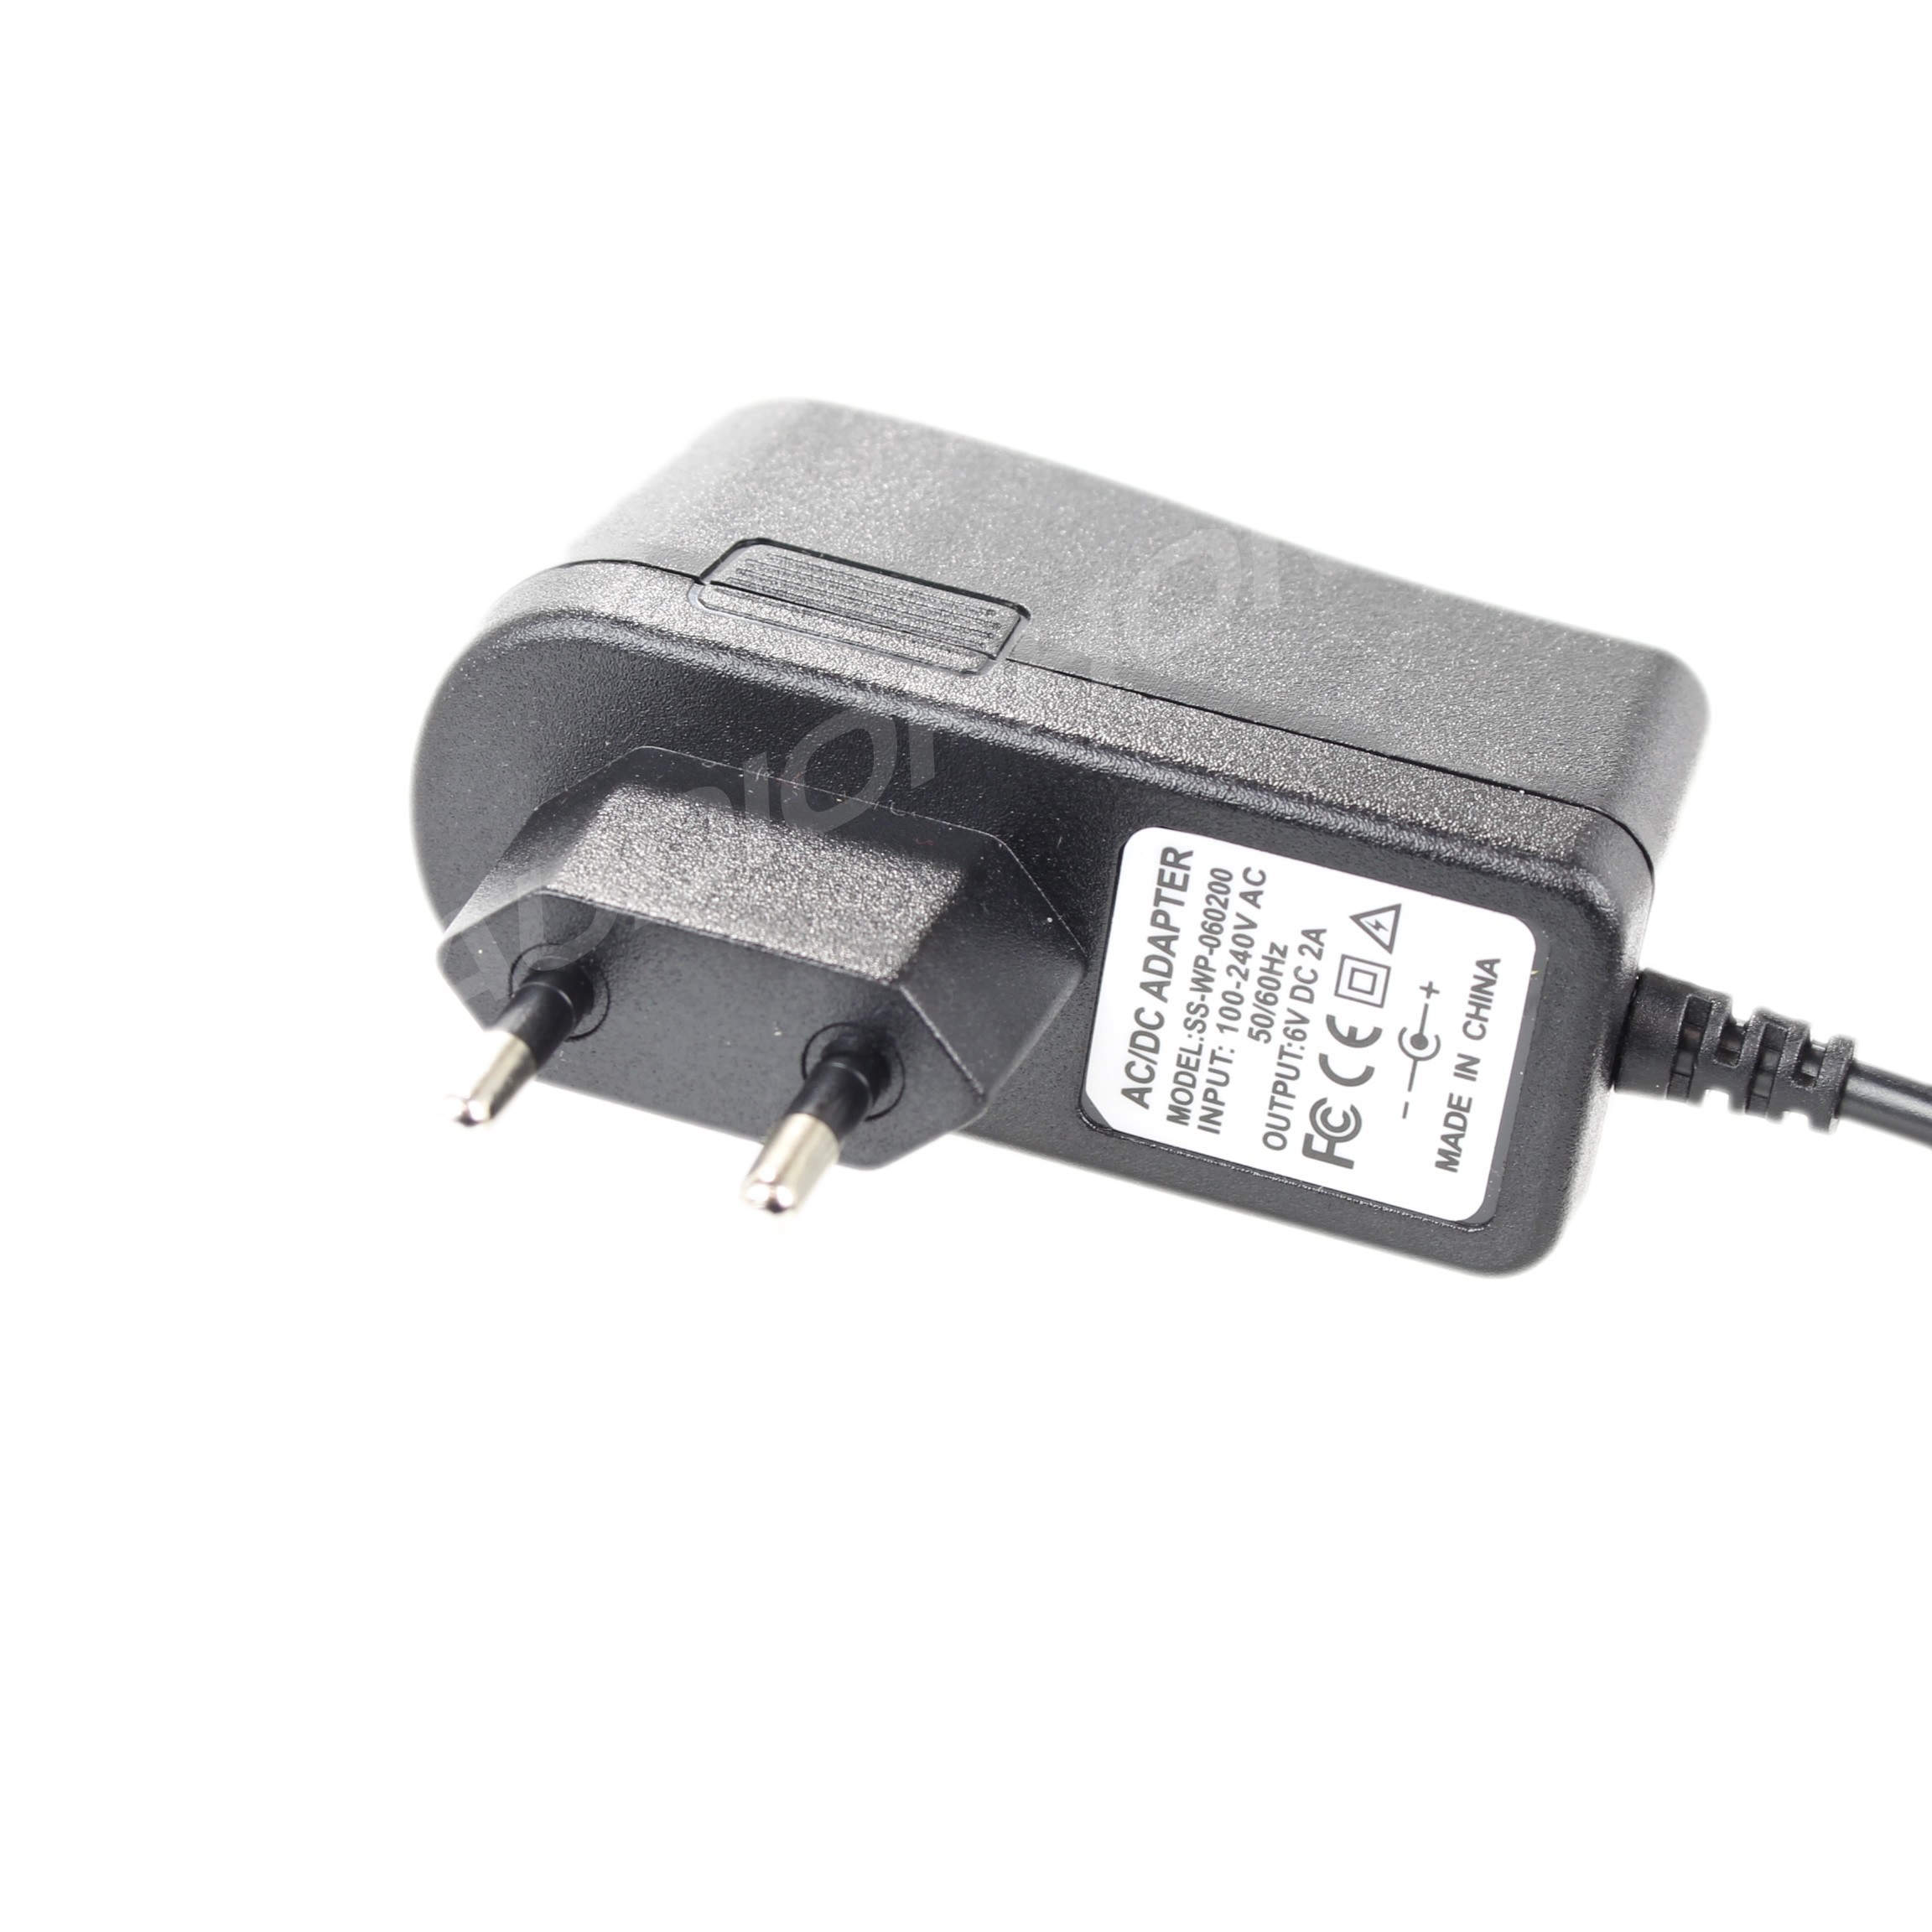 AC/DC Switching Adapter 100-240V to 6V 2A DC